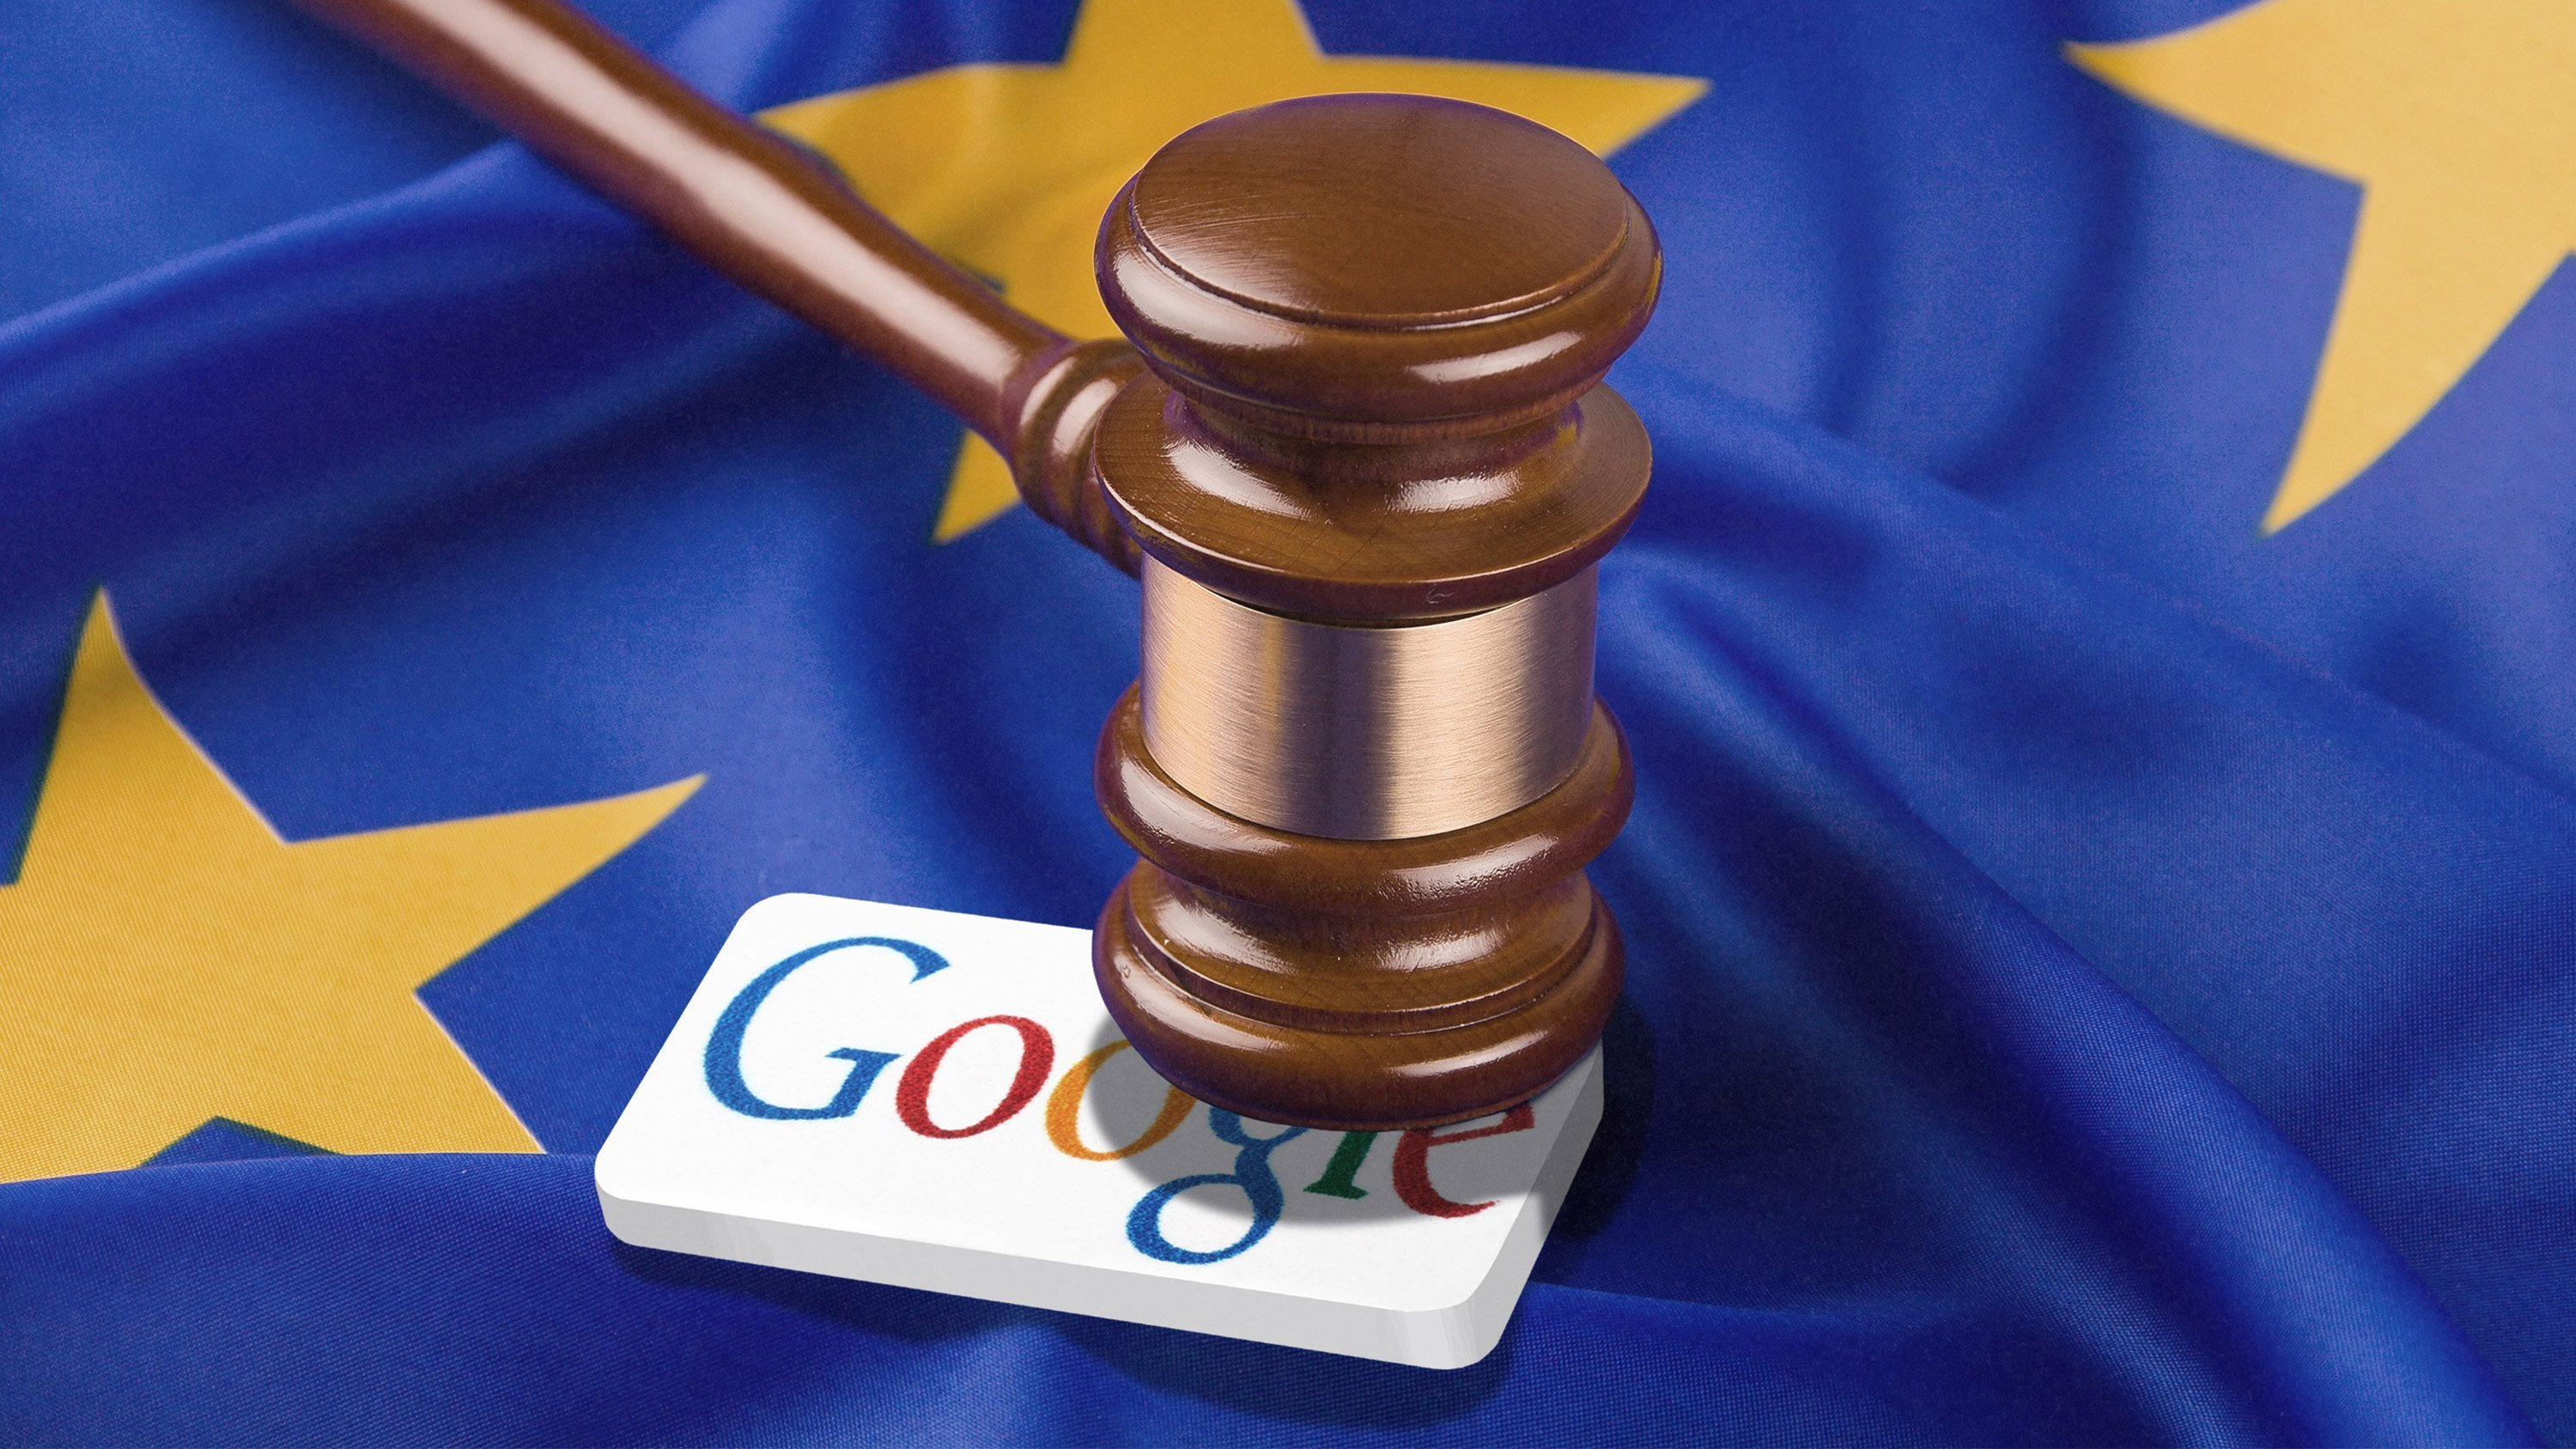 The EU just fined Google a record 2.42 billion euros